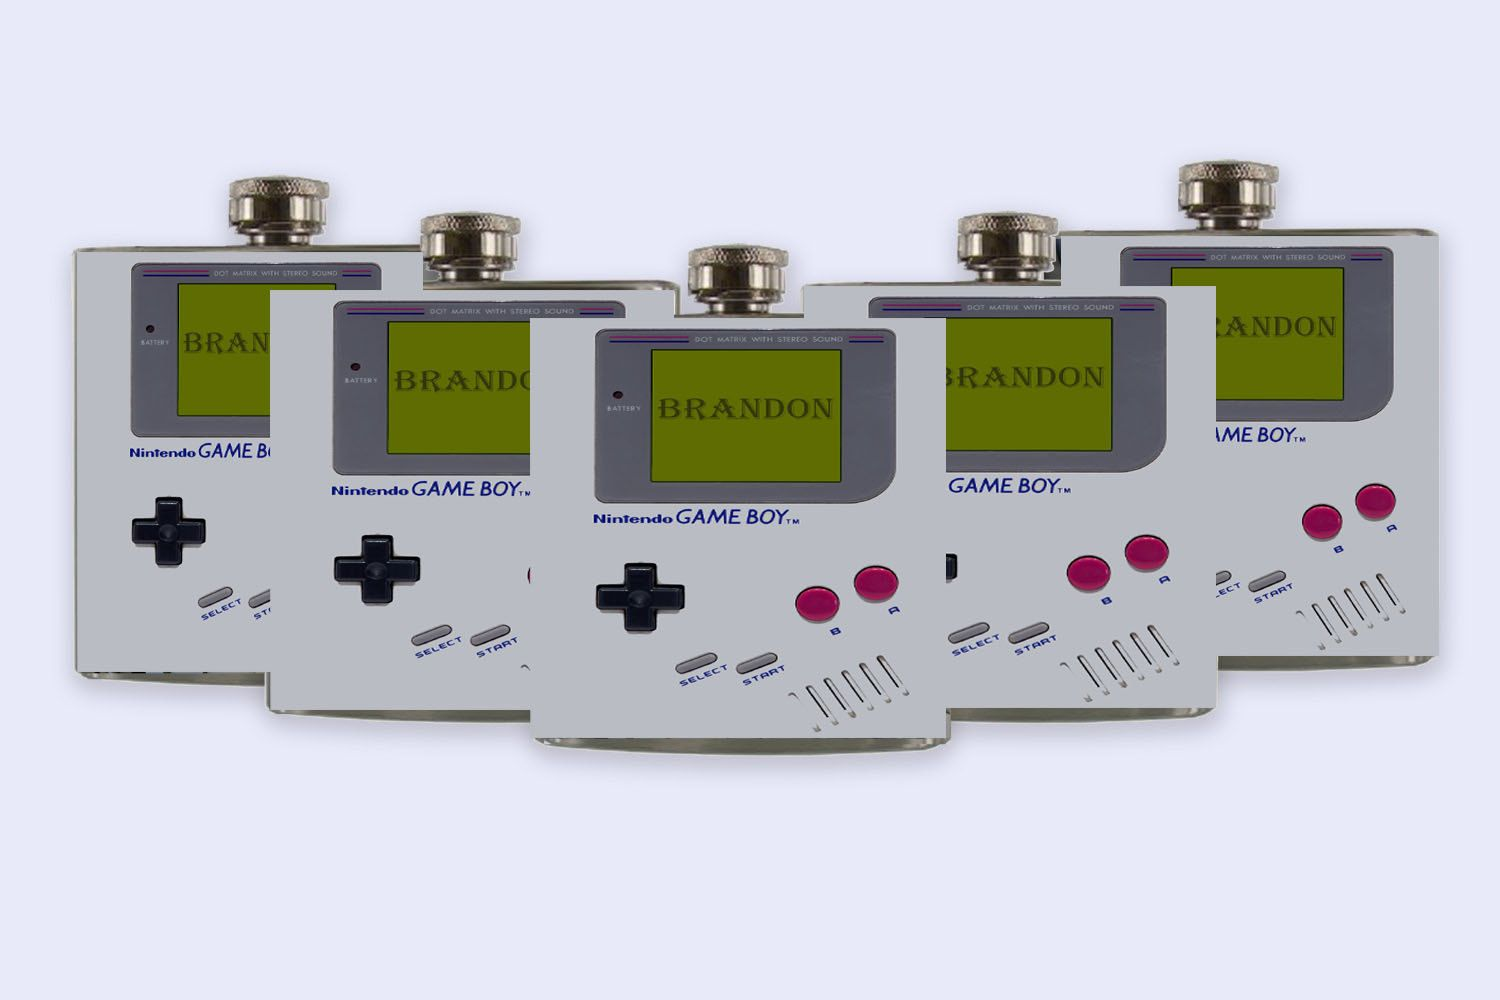 How About Gameboy Custom Flasku0027s For The Groomsmen? Wedspire.com Can Help  You Select